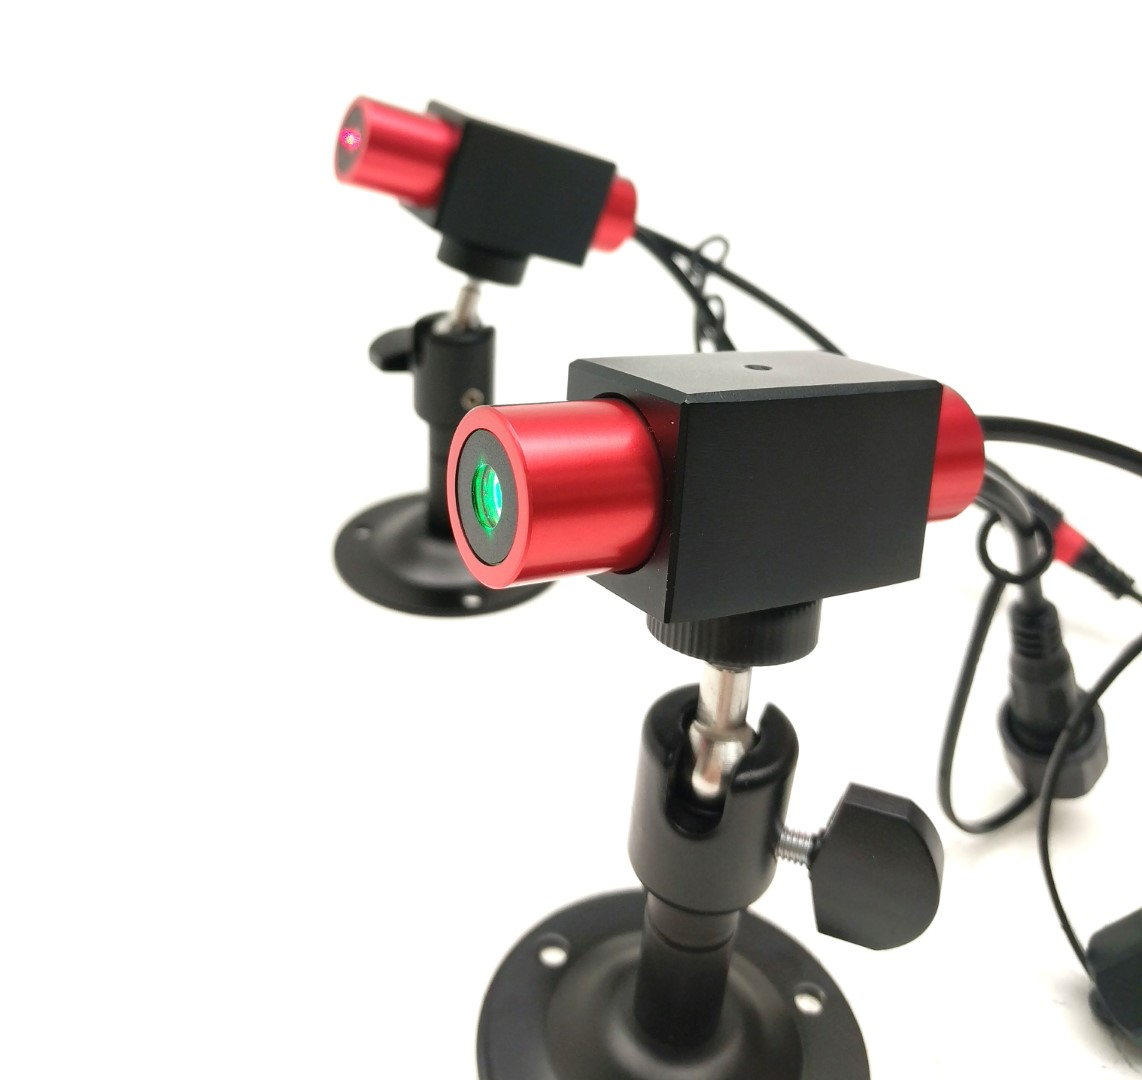 5 mW 635 nm Red Premium Structured Line Laser, 44° fan angle, adjustable focus, TTL+, Sealed IP67